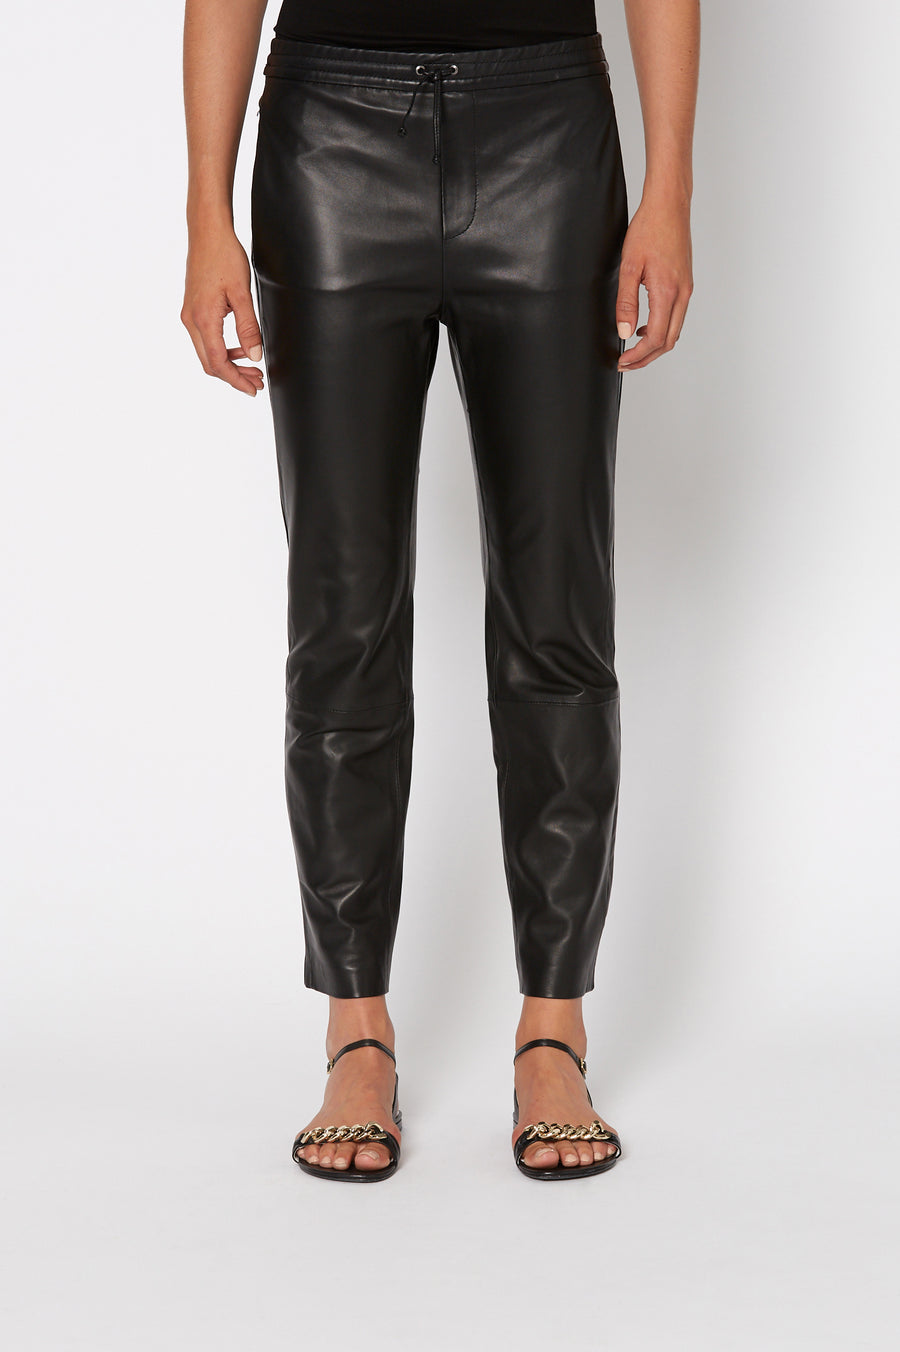 LEATHER JOGGER, BLACK color